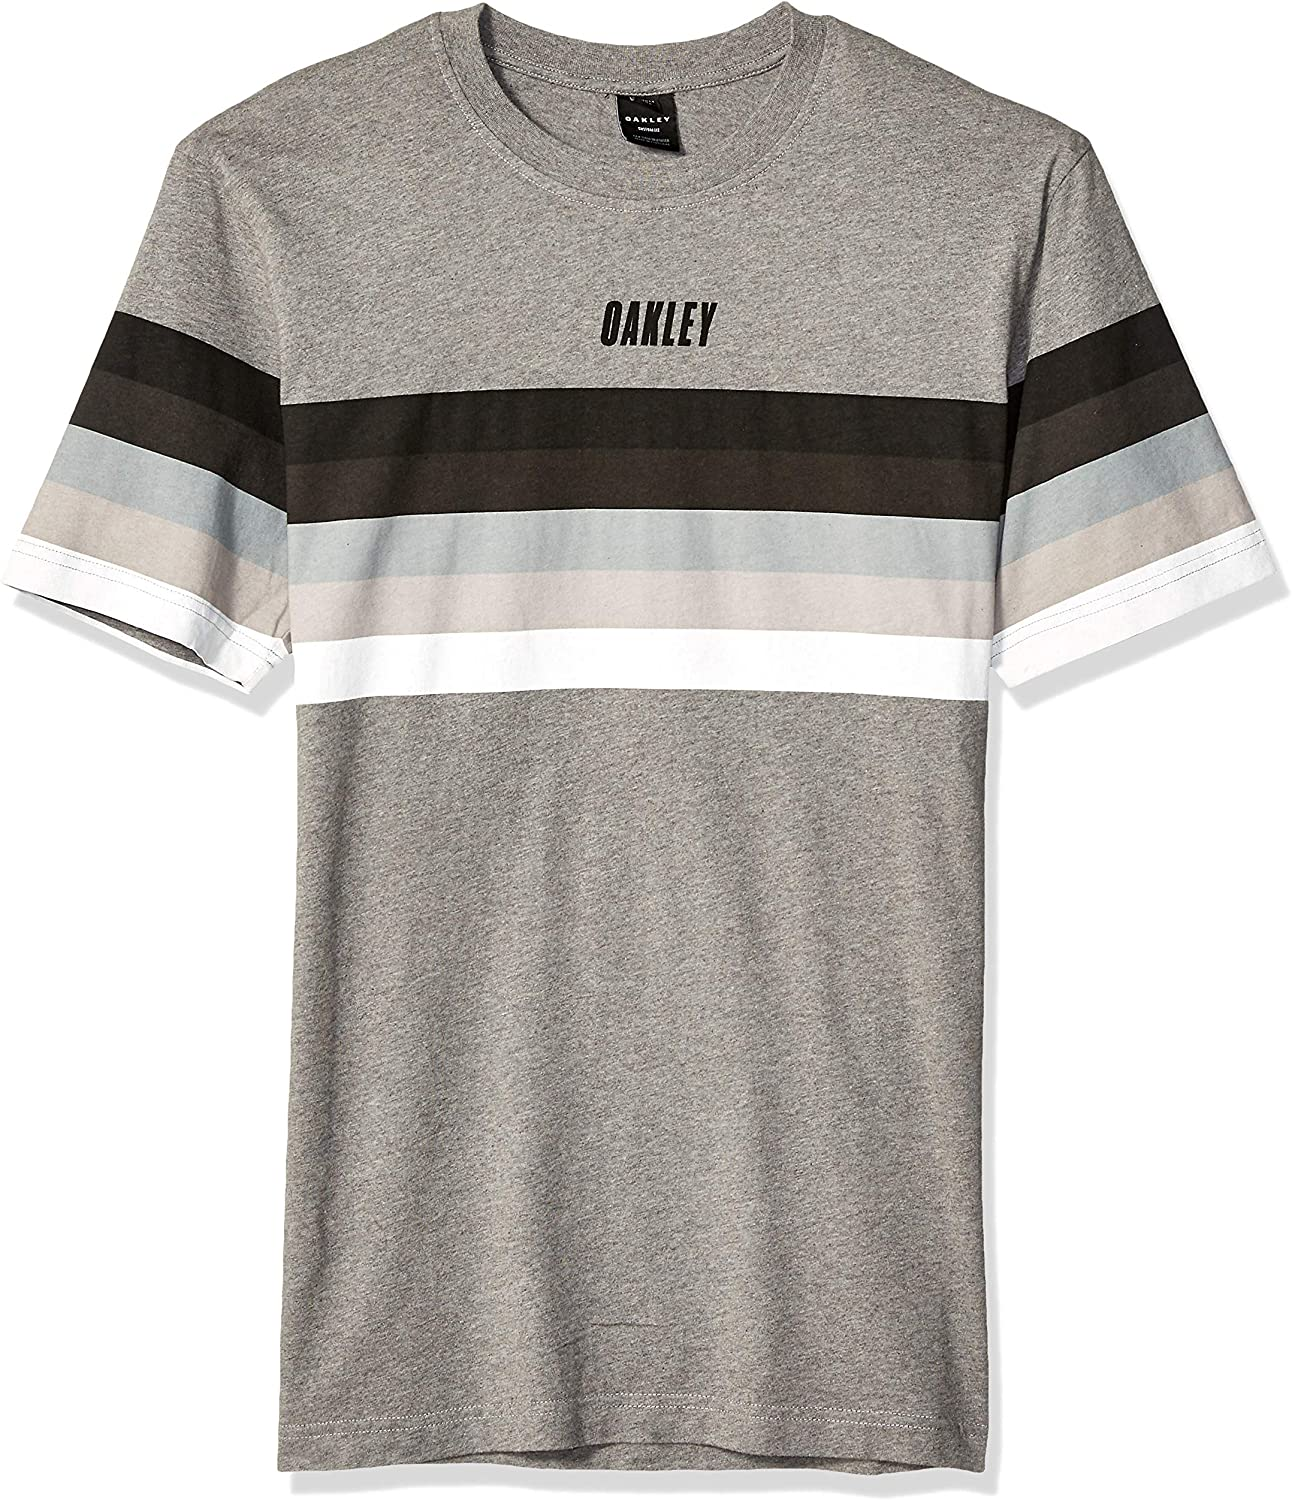 Oakley Mens TN Racing Sunset Stripe Camisa, Athletic Heather Grey, XXL para Hombre: Amazon.es: Ropa y accesorios